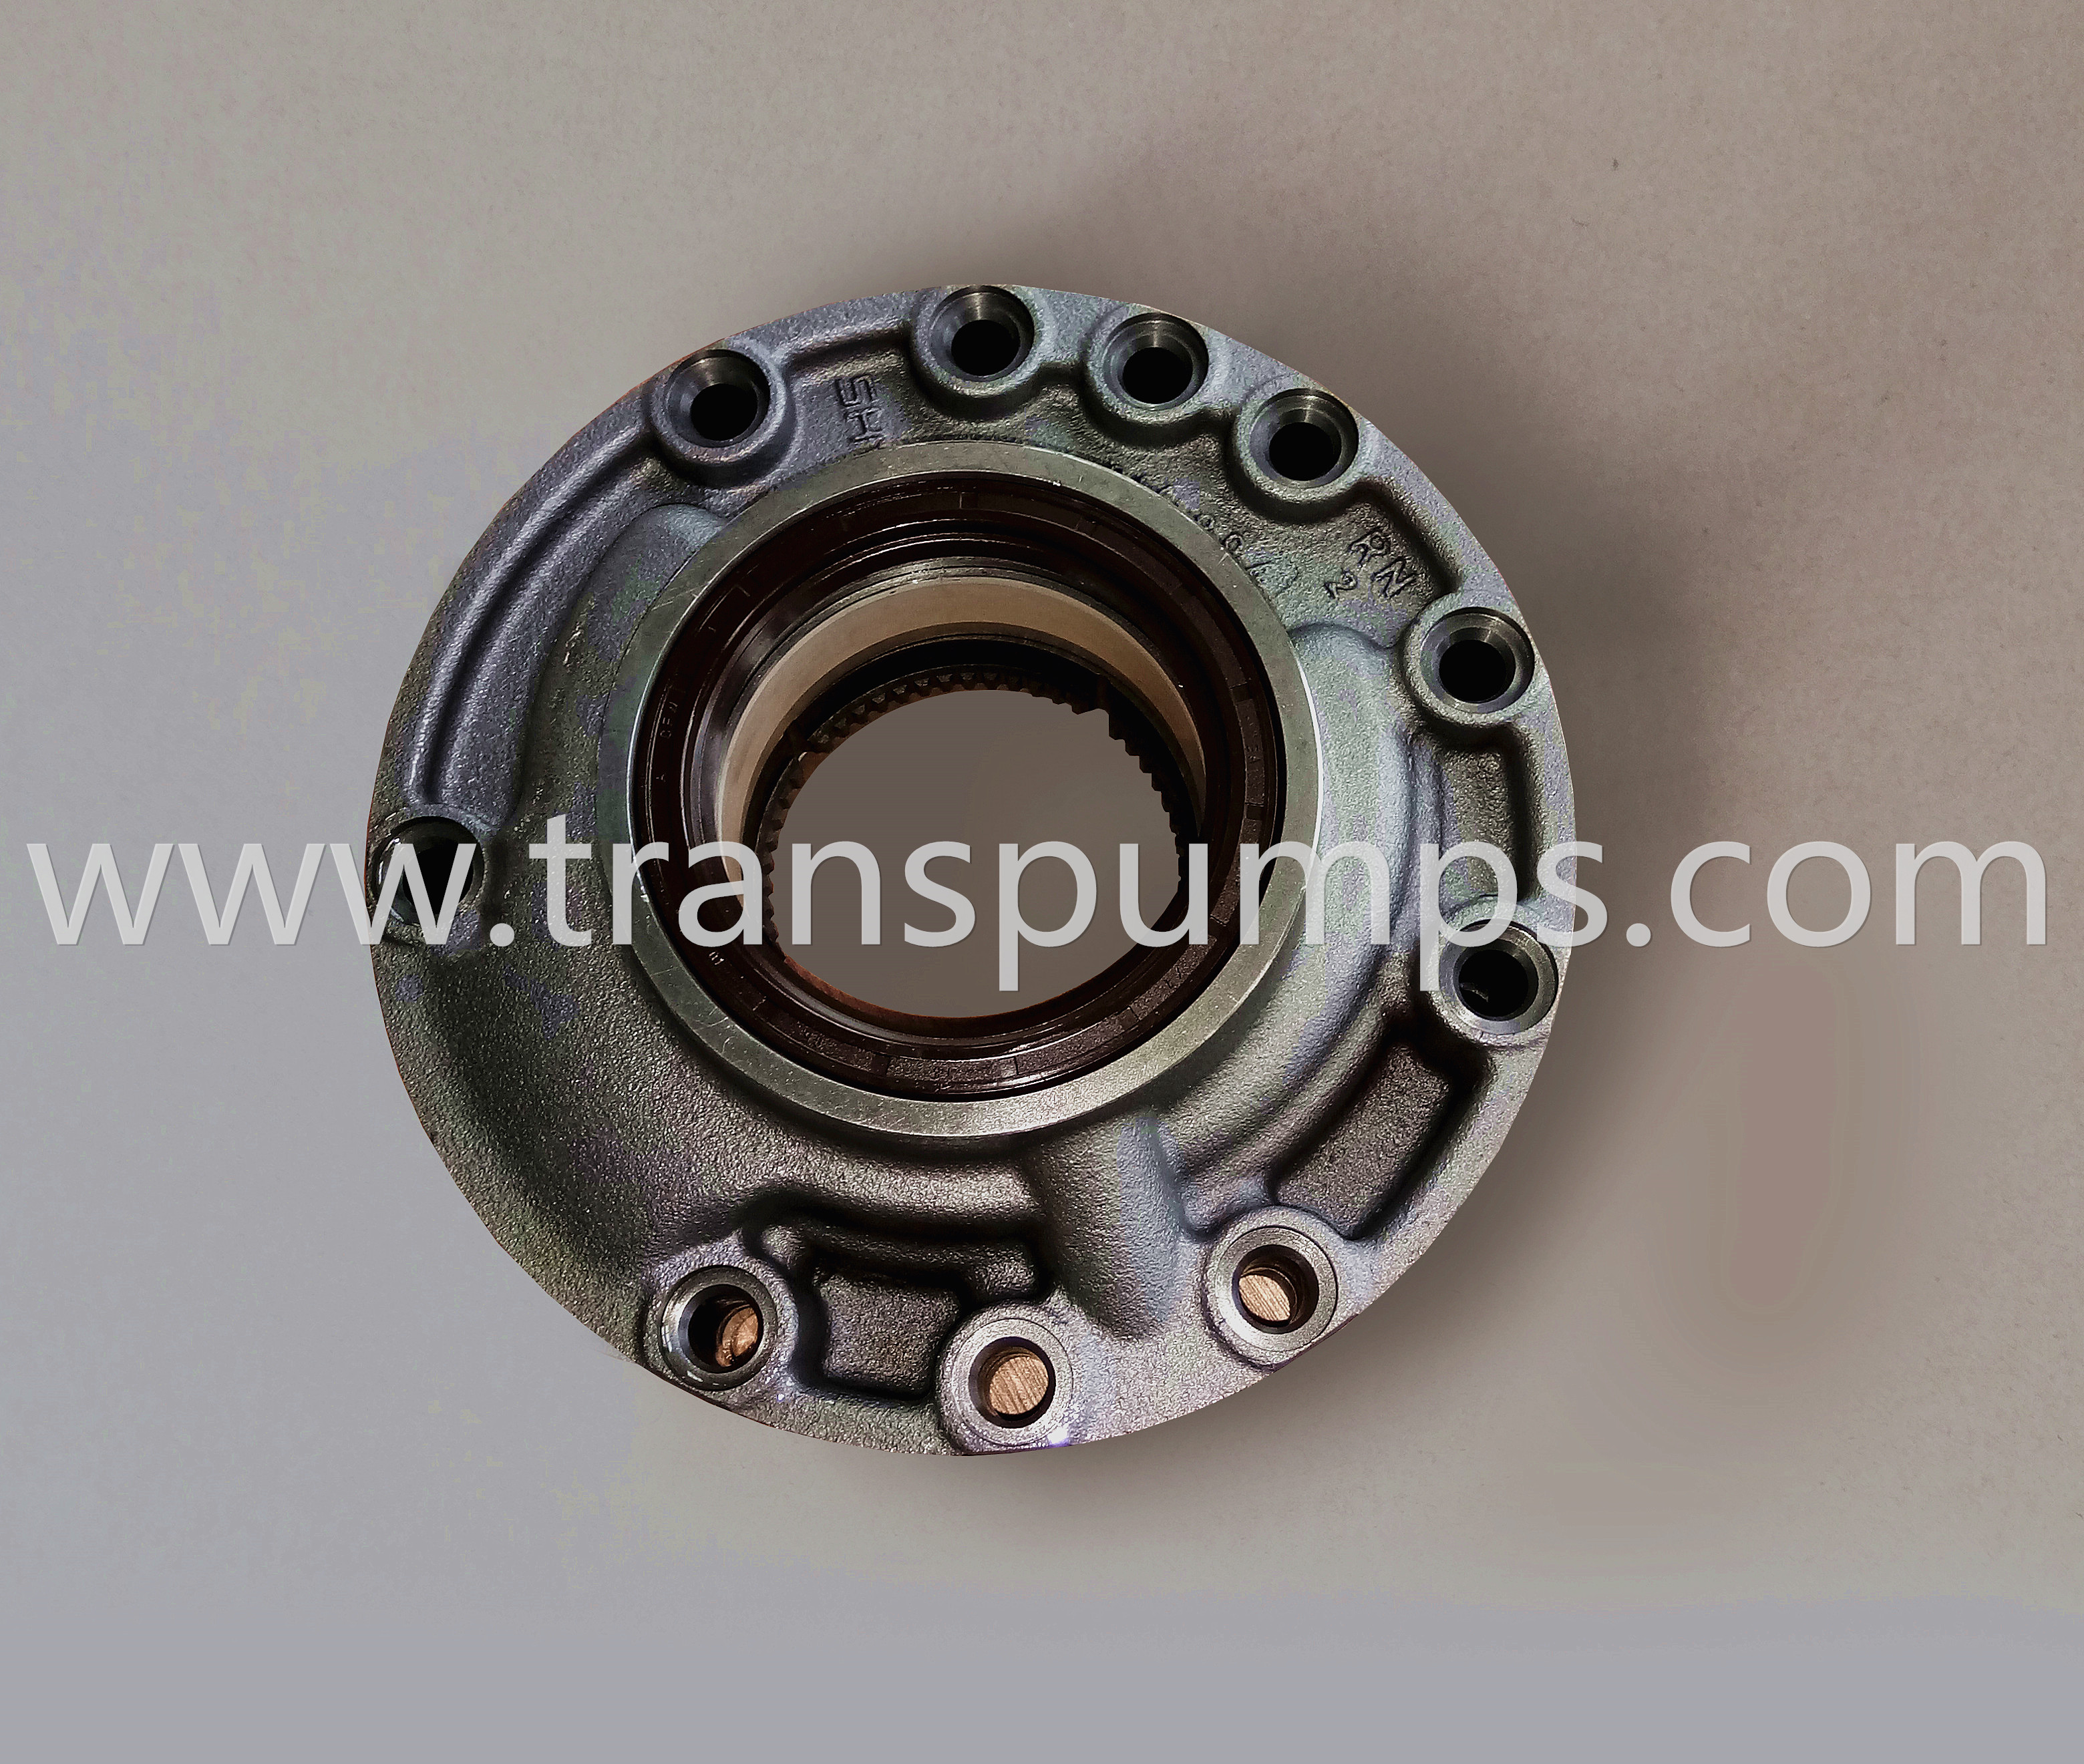 Original ZF Getriebepumpe, Oil pump, gear pump ZF 0501 214 894, transmission oil pump assy, transmission pump replacement price, transmission oil pump assy, transmission pump replacement price, ZF Hydraulik pumpen, CPM4894 Replacement for 0501214894 ZF Charging Pump, Application: WG-130; WG-131; WG-158 and WG-160, CPM4894 replacement for 0501214894 ZF charging pump, ZF pump manufacturer, ZF Pump Assembly Transmission, ZF transmission pump assembly, ZF charging pump for wheel loader, ZF bomba, ZF pompa, ZF hacoc, ZF pumpe, ZF pompe